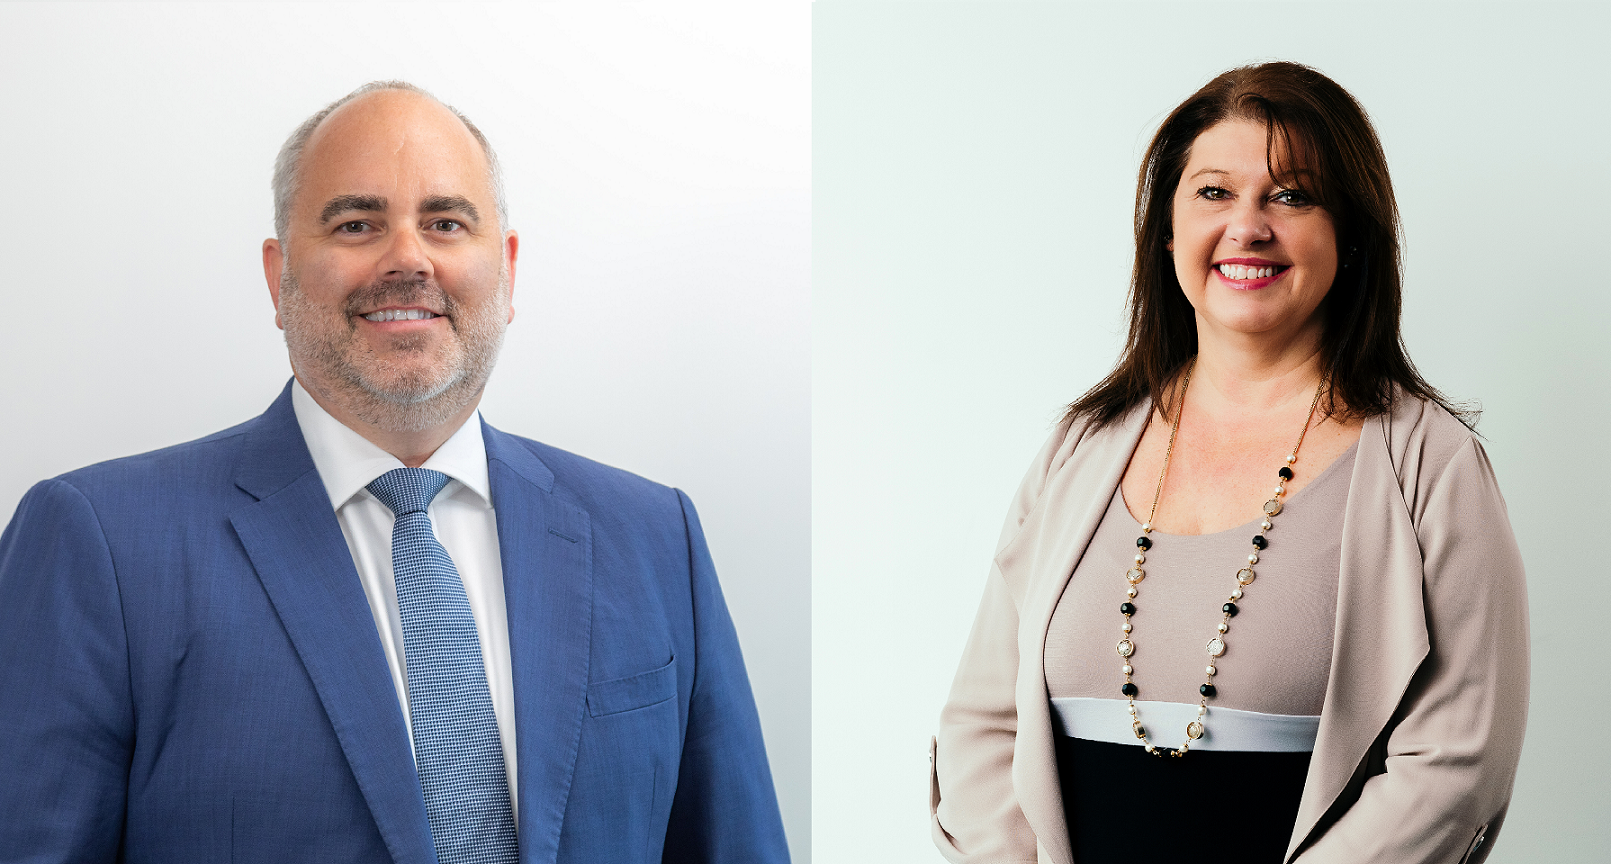 Citywealth Leaders List recognises Stuart Dowding and Lorraine Wheeler